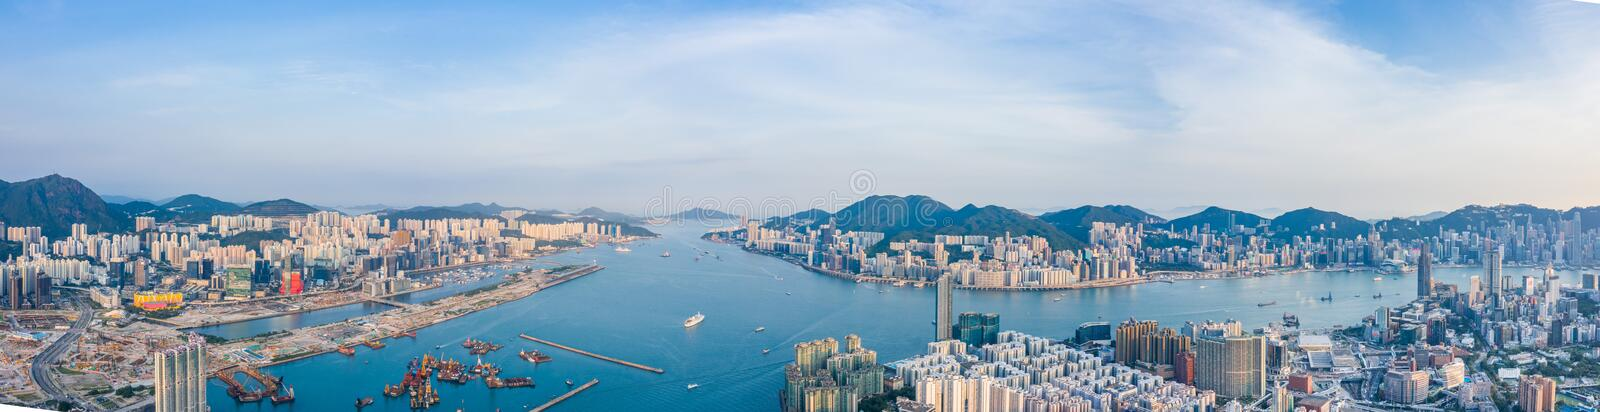 Sunset of Victoria Harbor, cityscape of Hong Kong. Asia stock photography